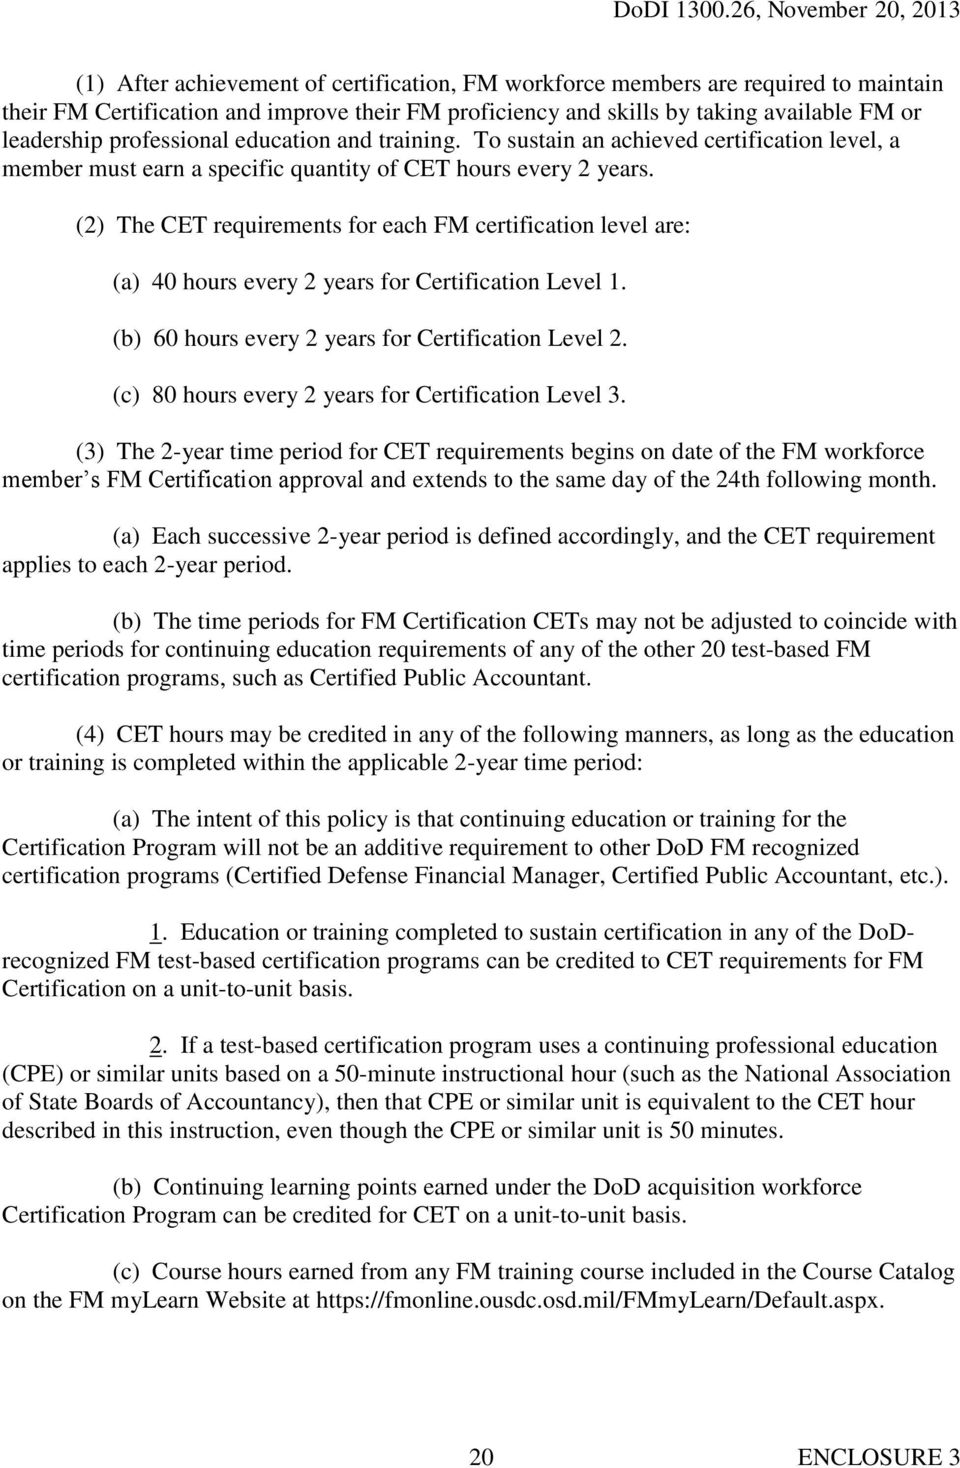 (2) The CET requirements for each FM certification level are: (a) 40 hours every 2 years for Certification Level 1. (b) 60 hours every 2 years for Certification Level 2.